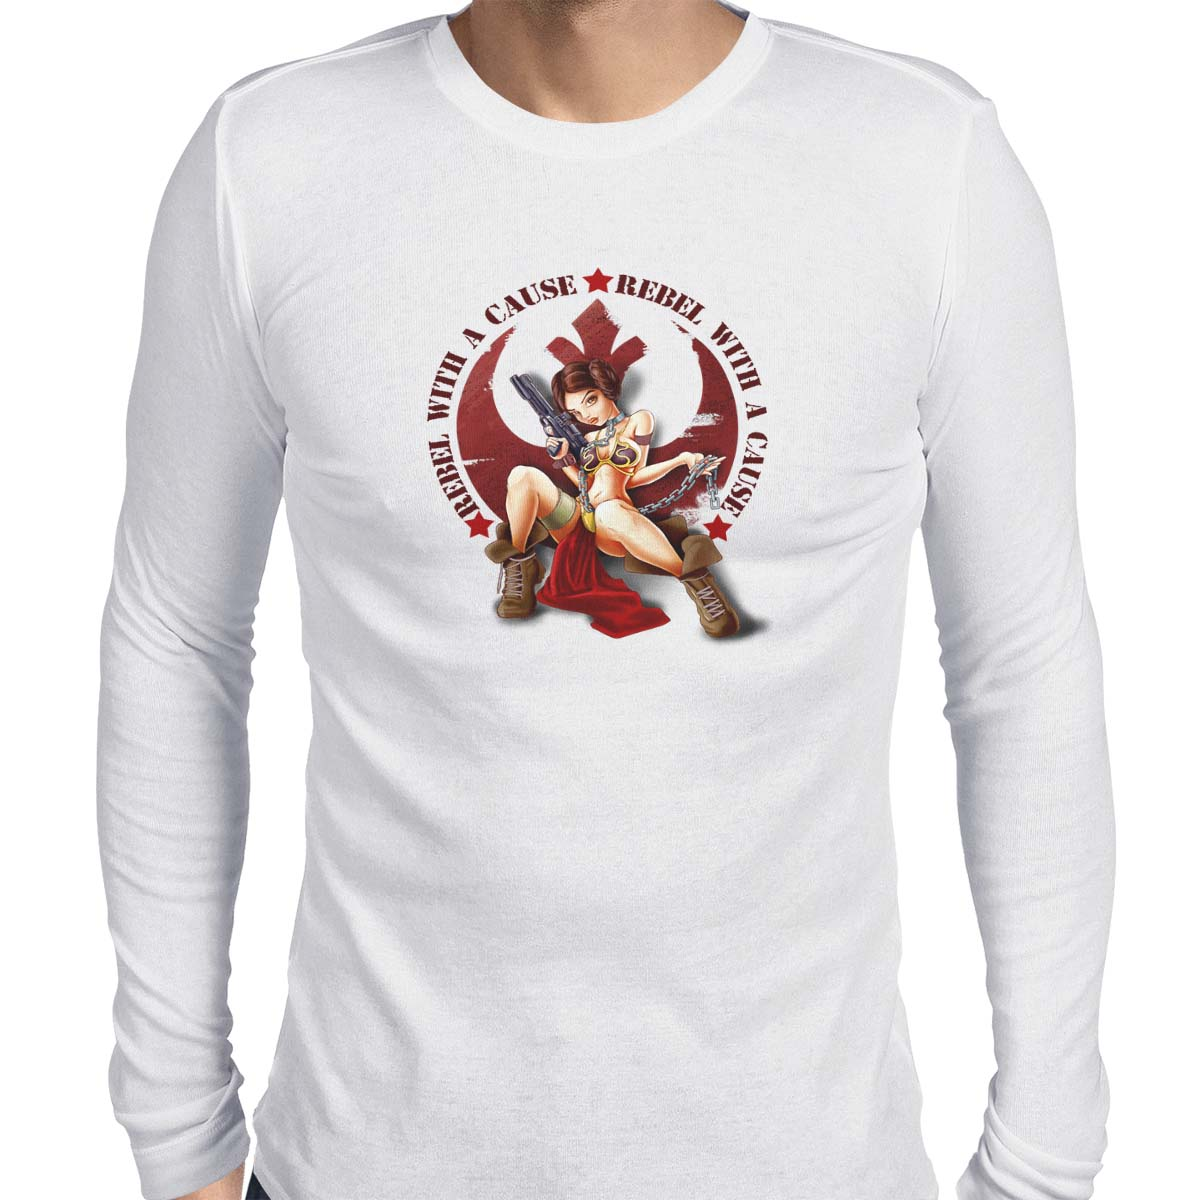 star wars rebel with a cause long sleeve white